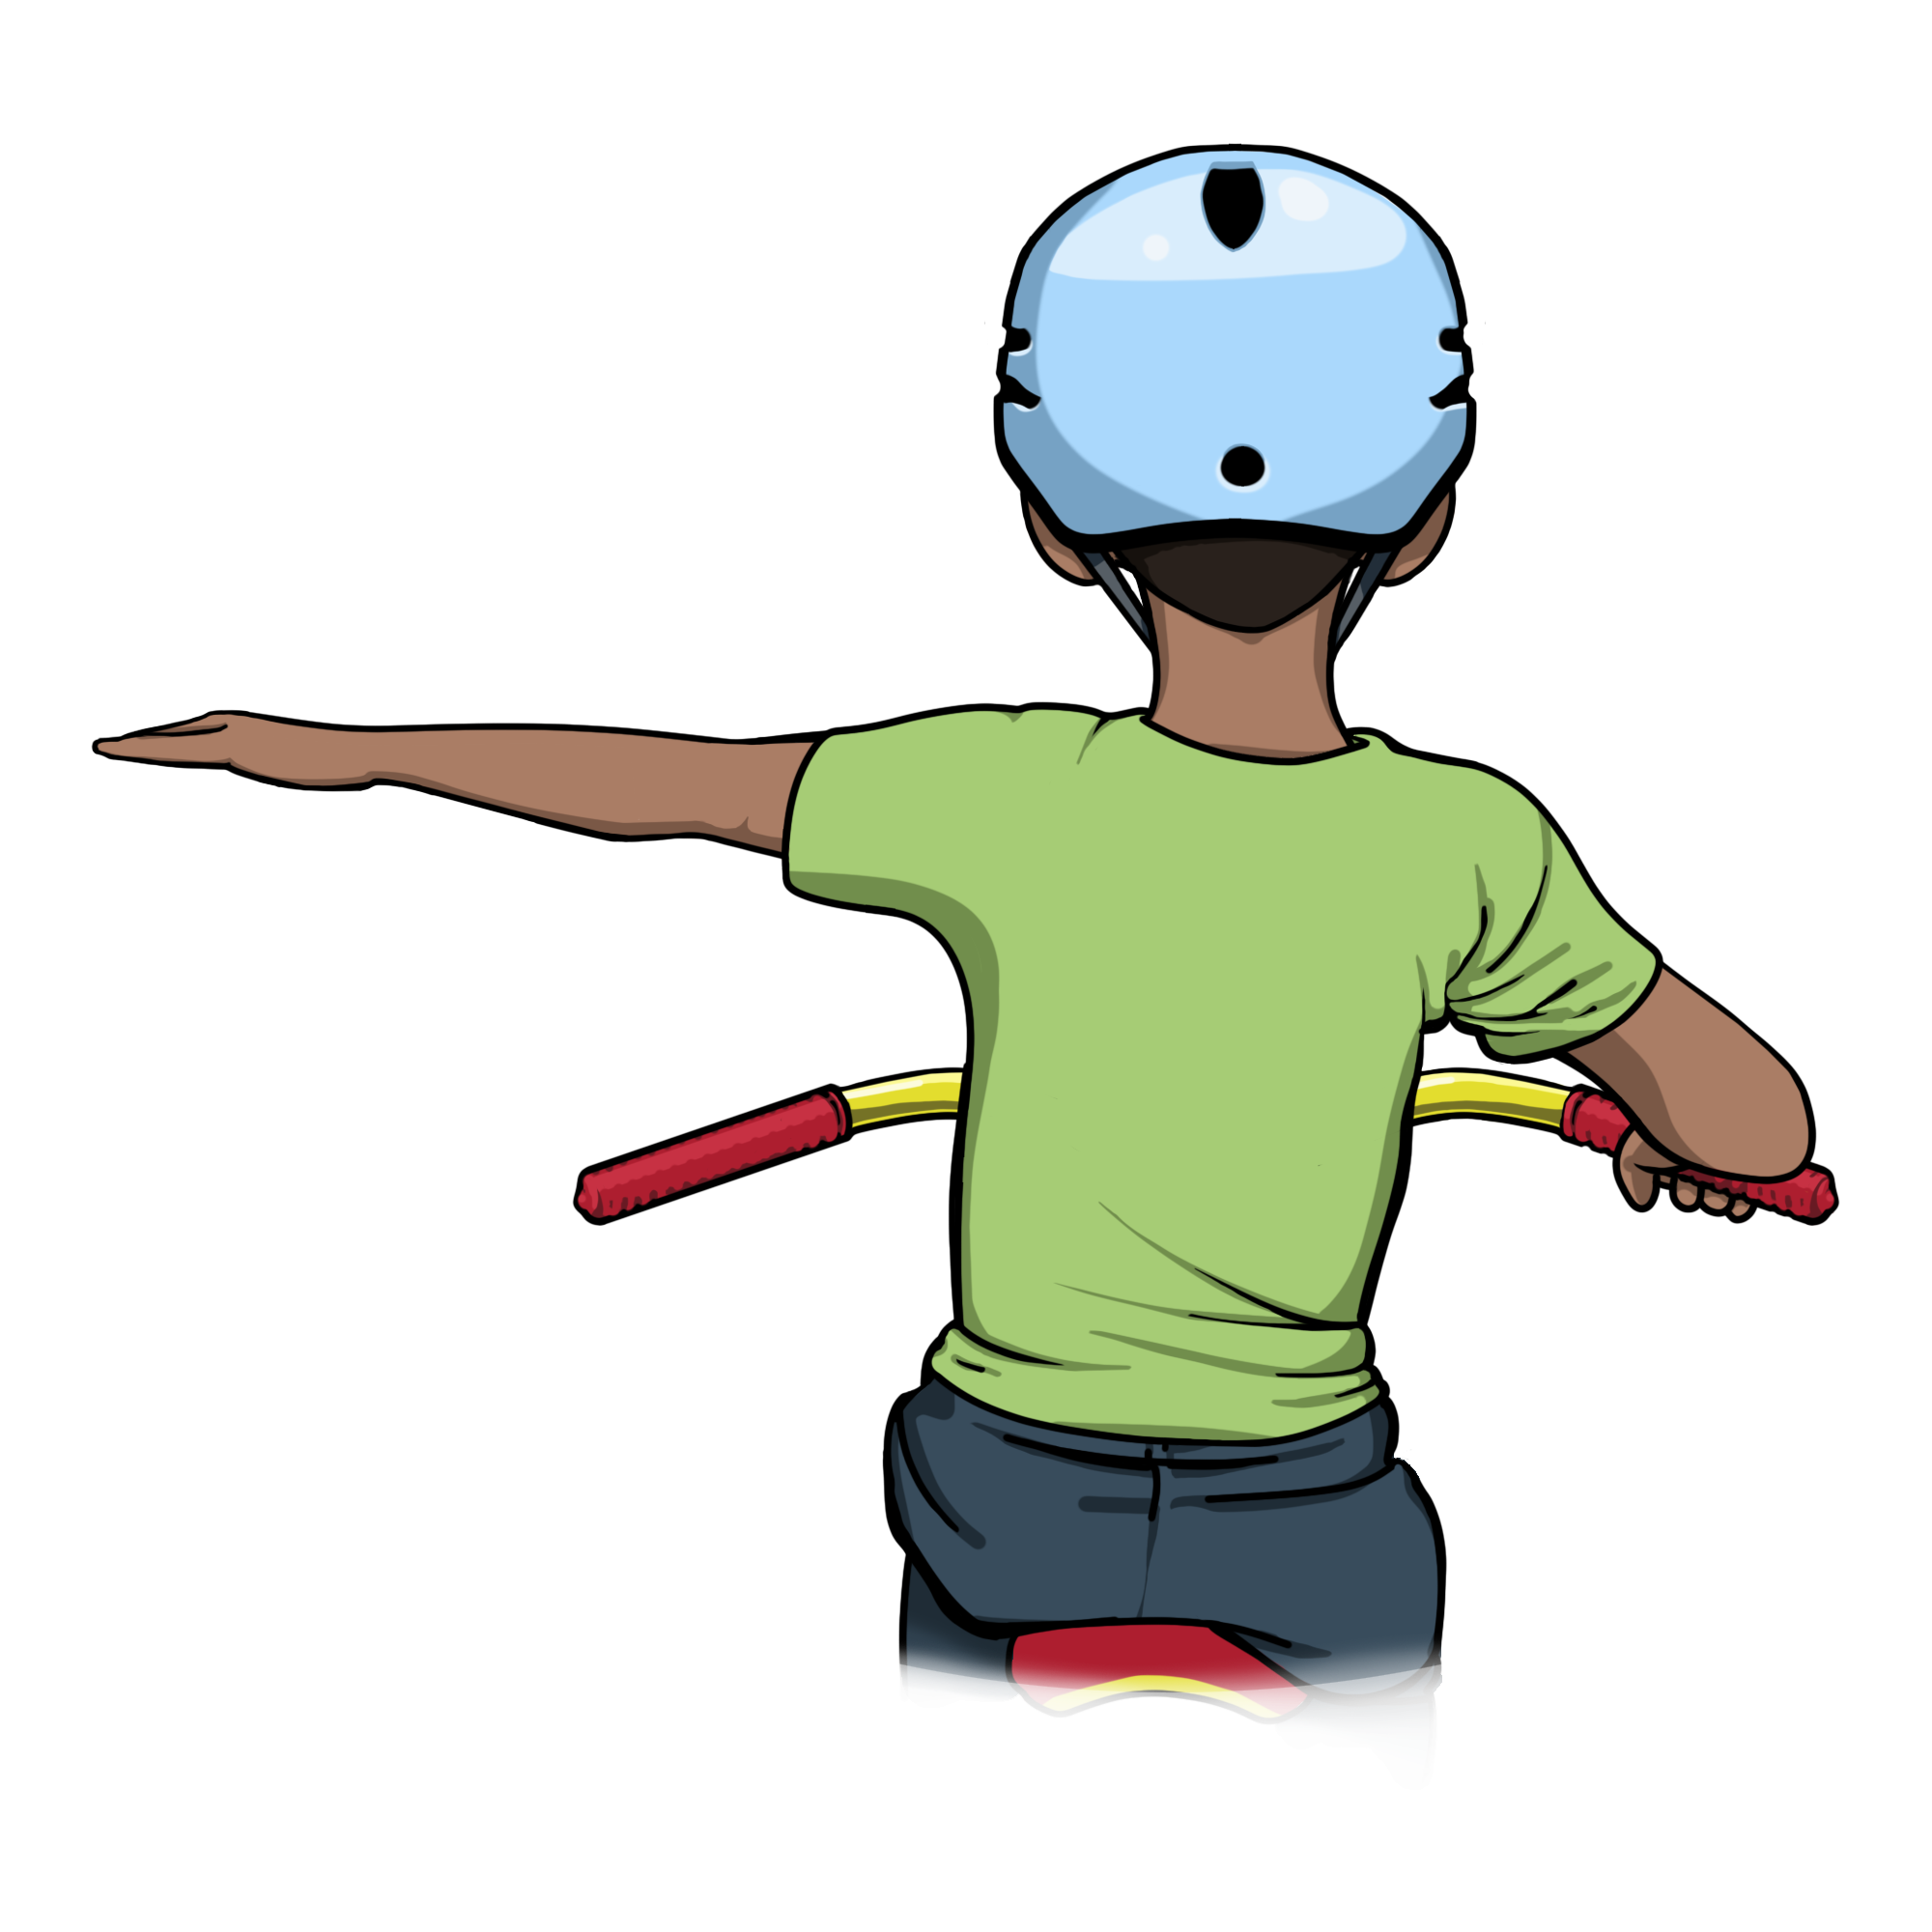 Left turn – Make a straight line with your left arm.